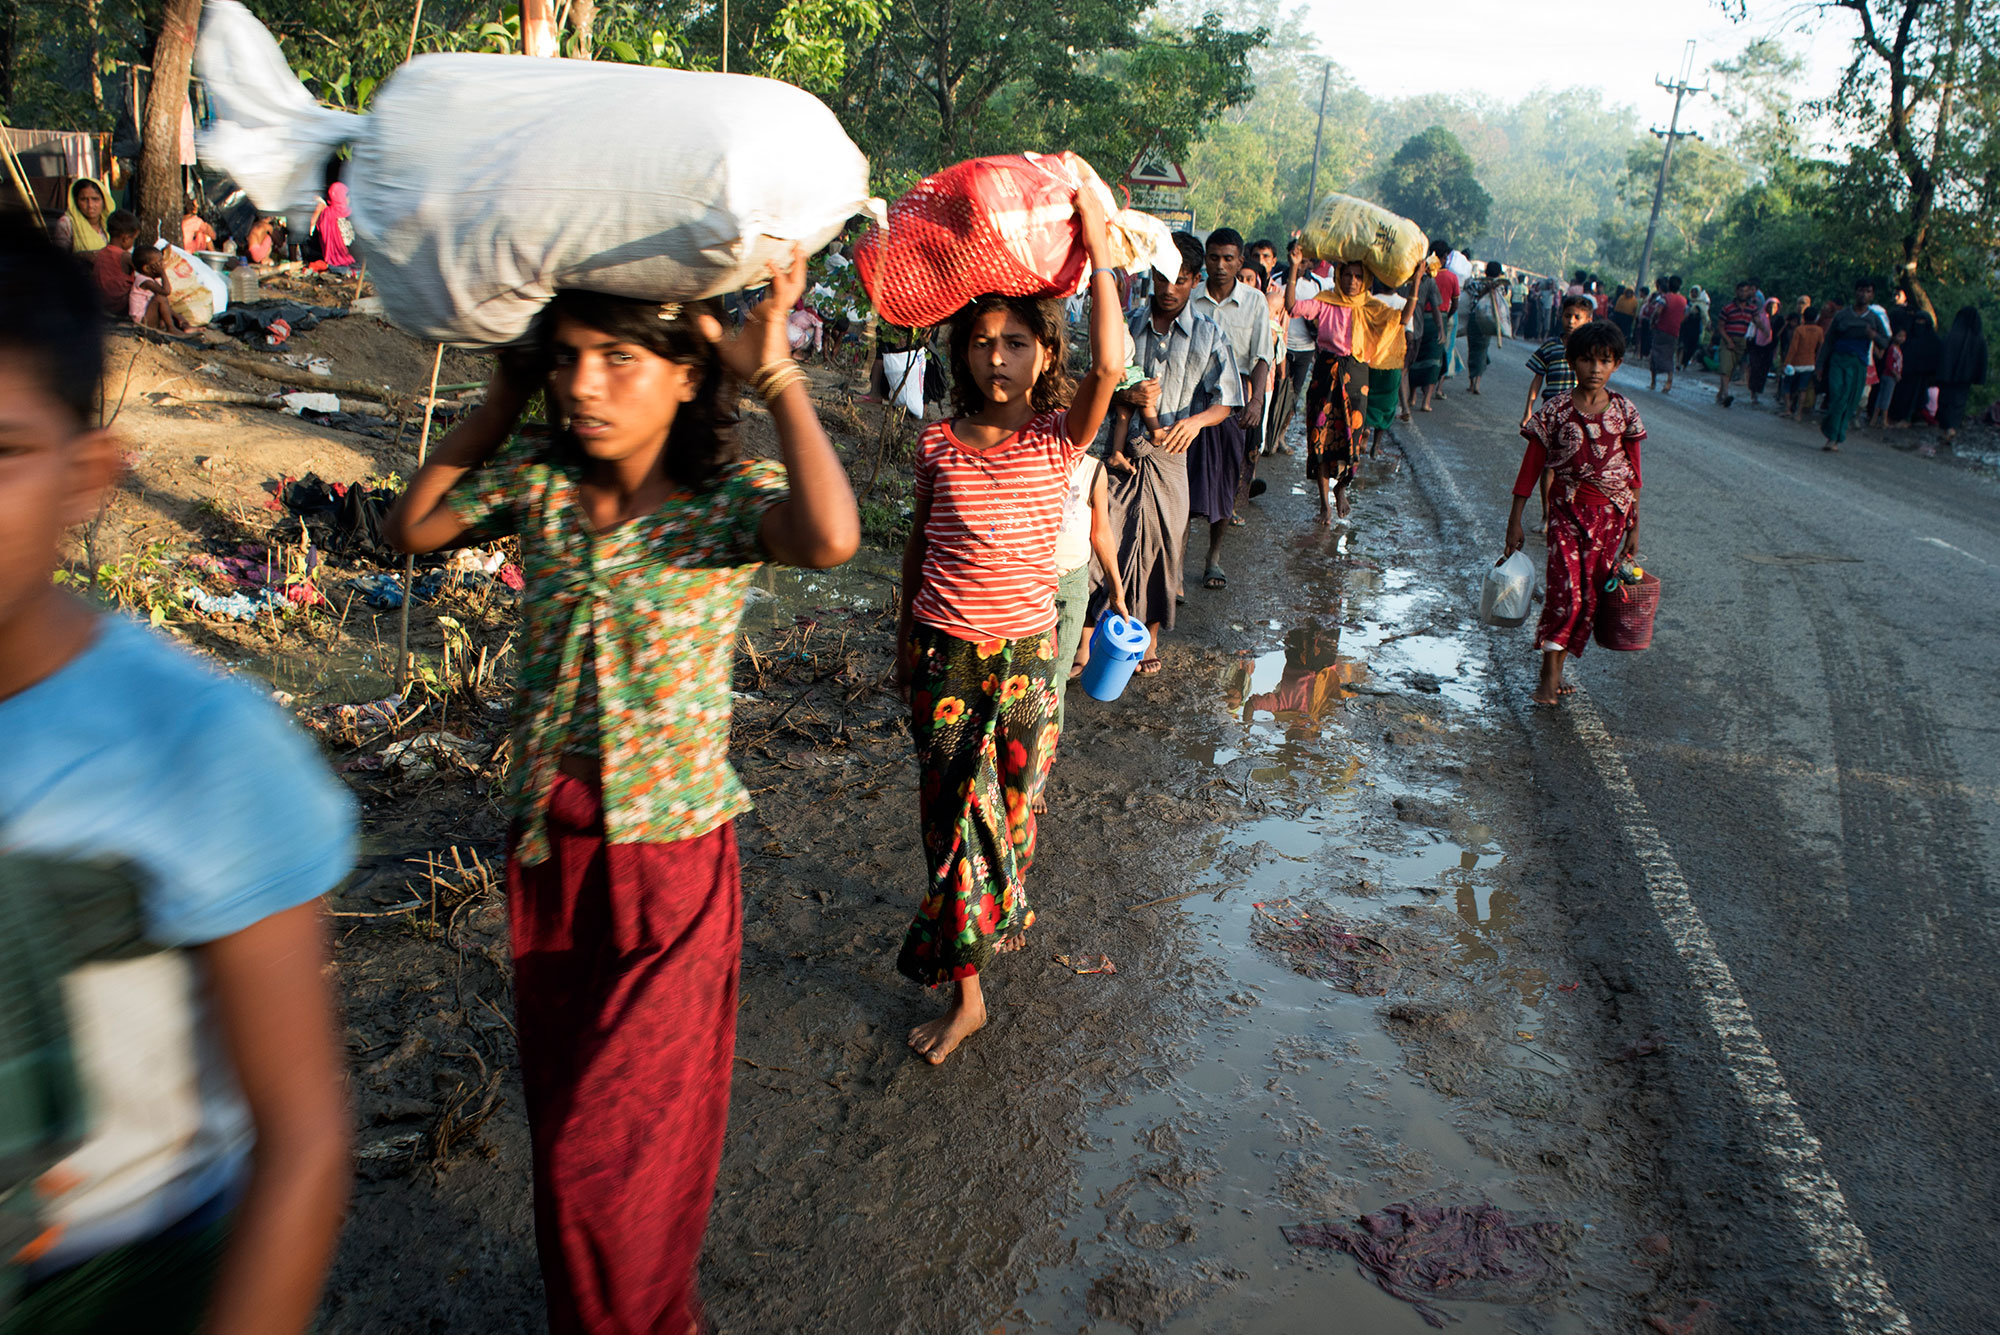 Hundreds of thousand Rohingya have fled persecution and violence in Burma